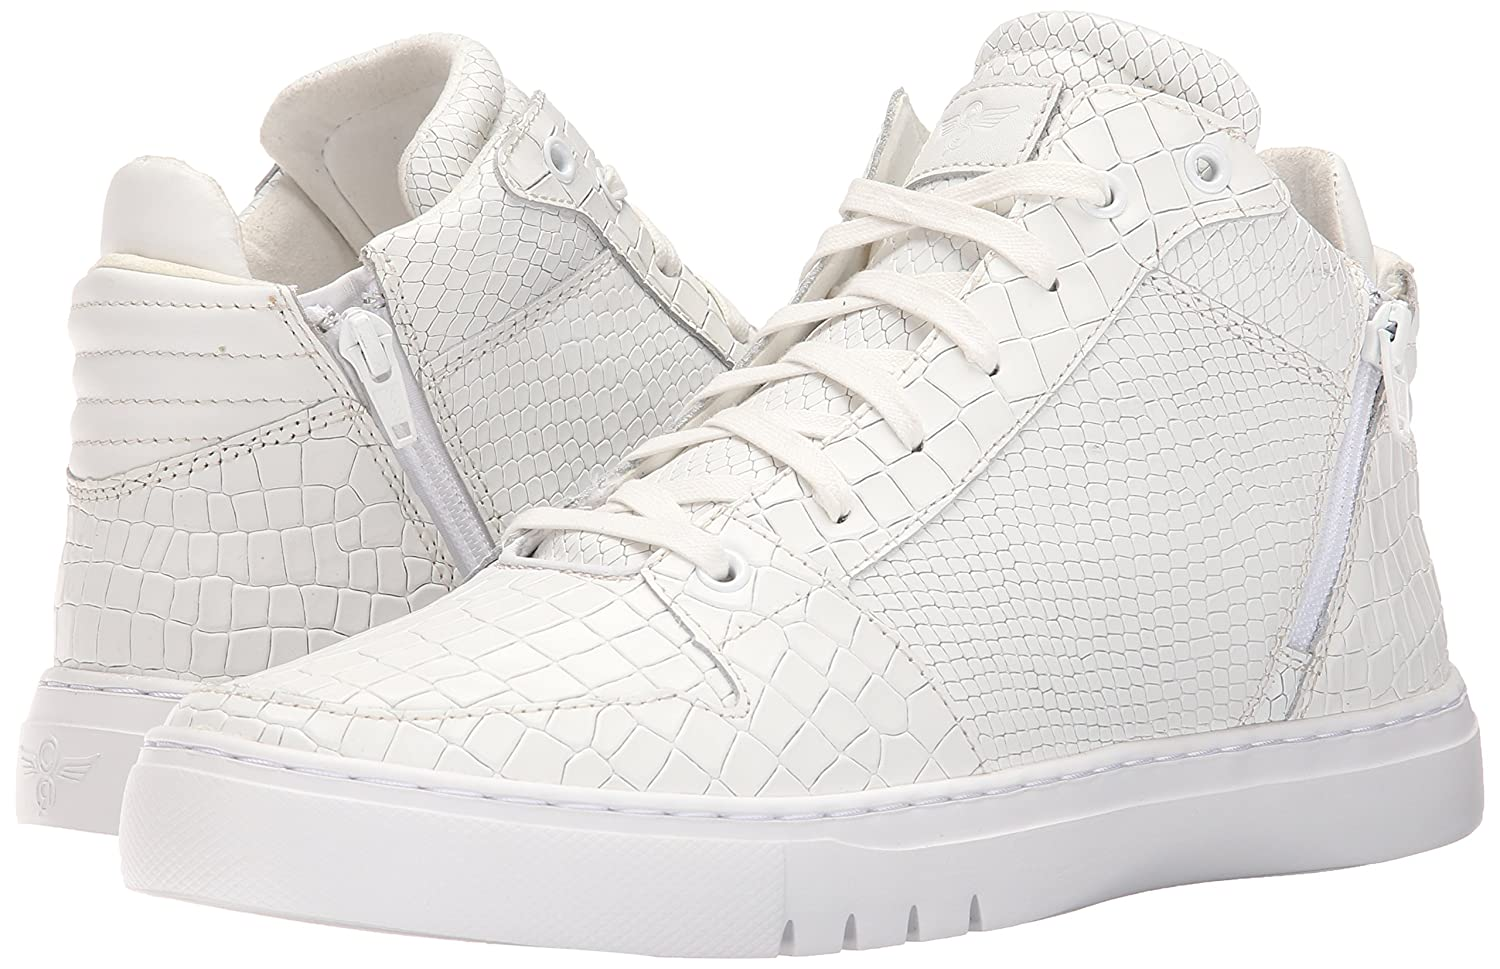 Creative Recreation Men's adonis mid mid adonis Fashion Sneaker 13 M US|White Crocodile Snake B015GIJ2L8 031100